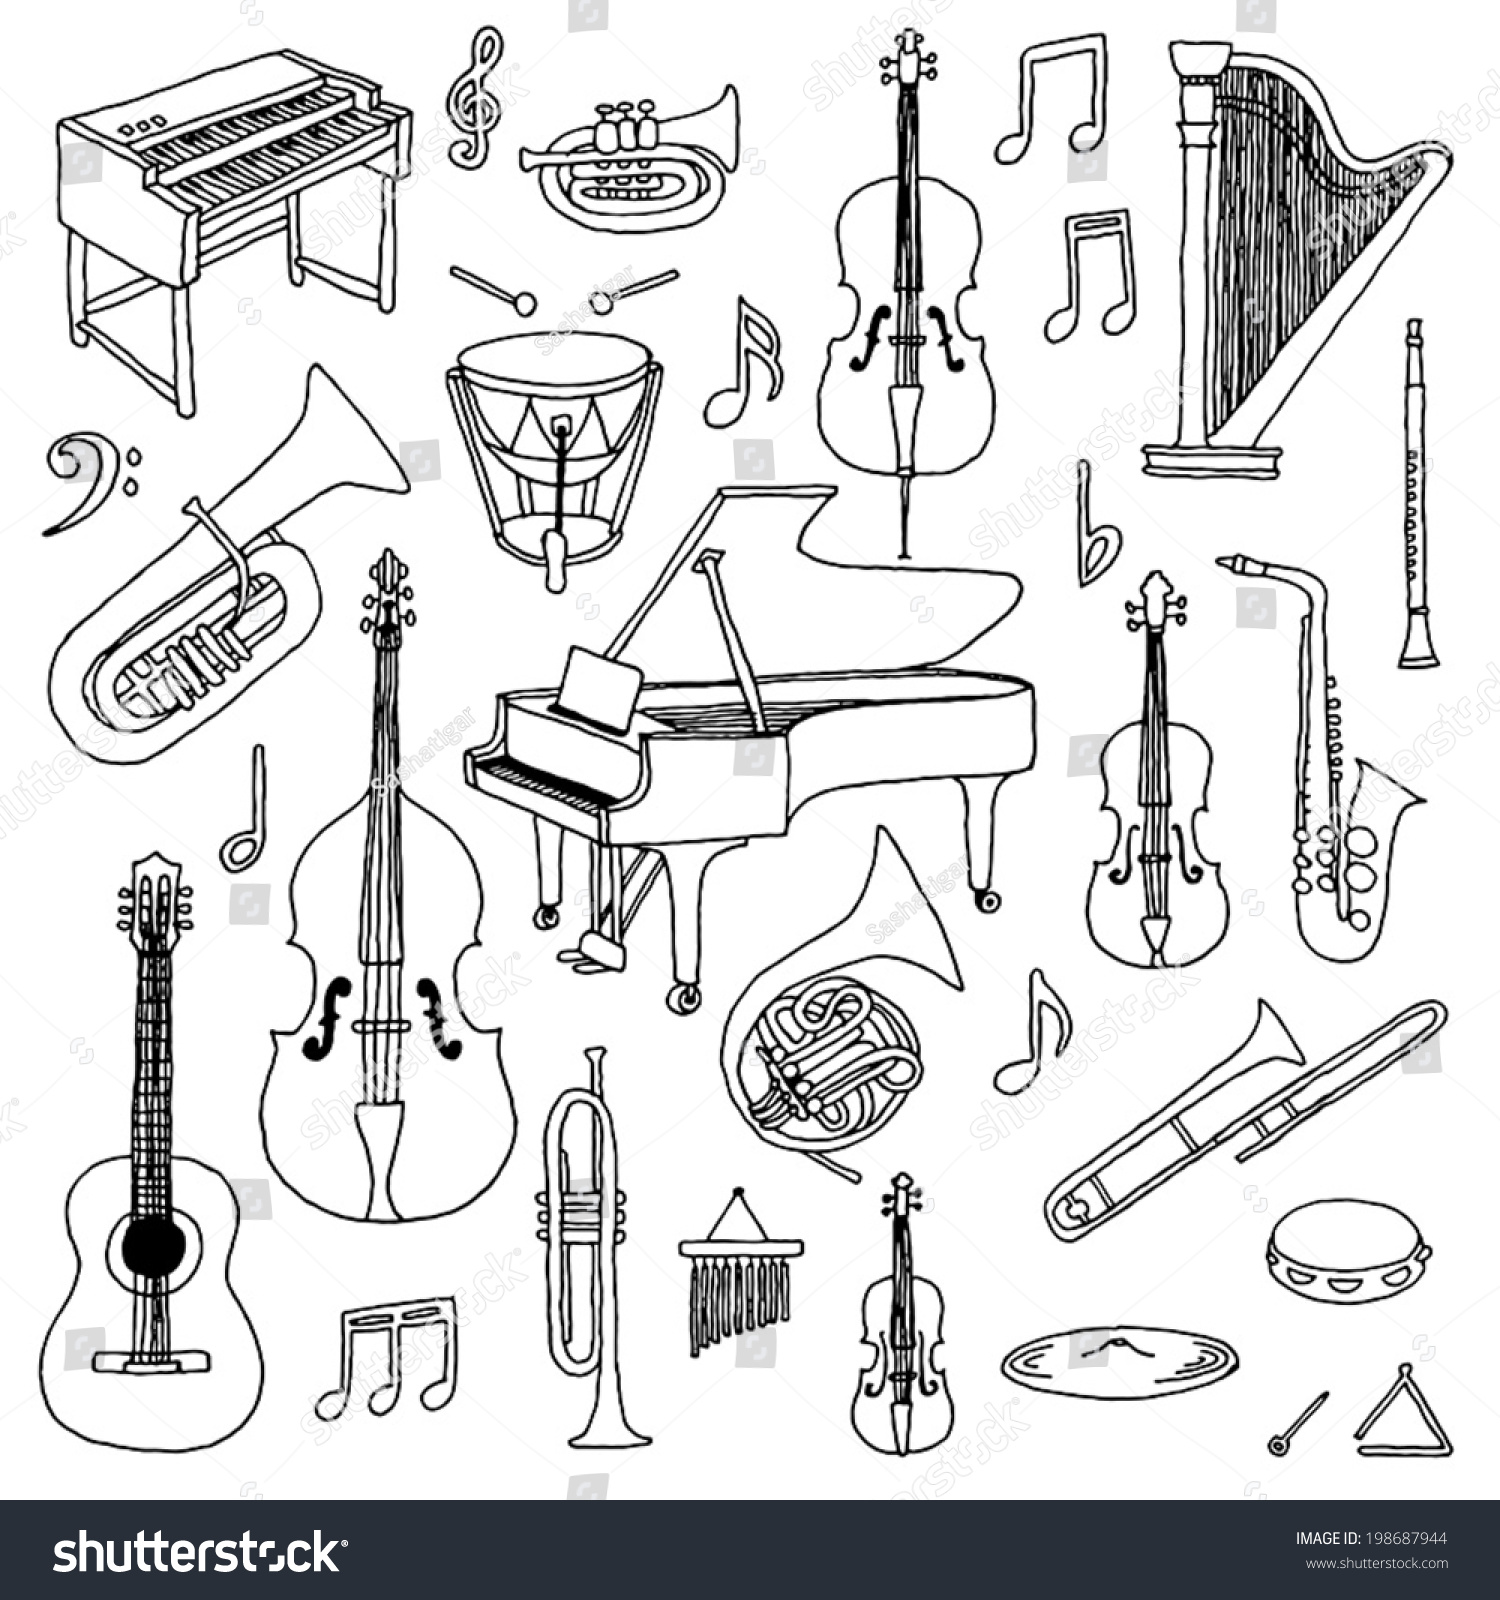 This is a picture of Inventive Musical Instruments Drawing